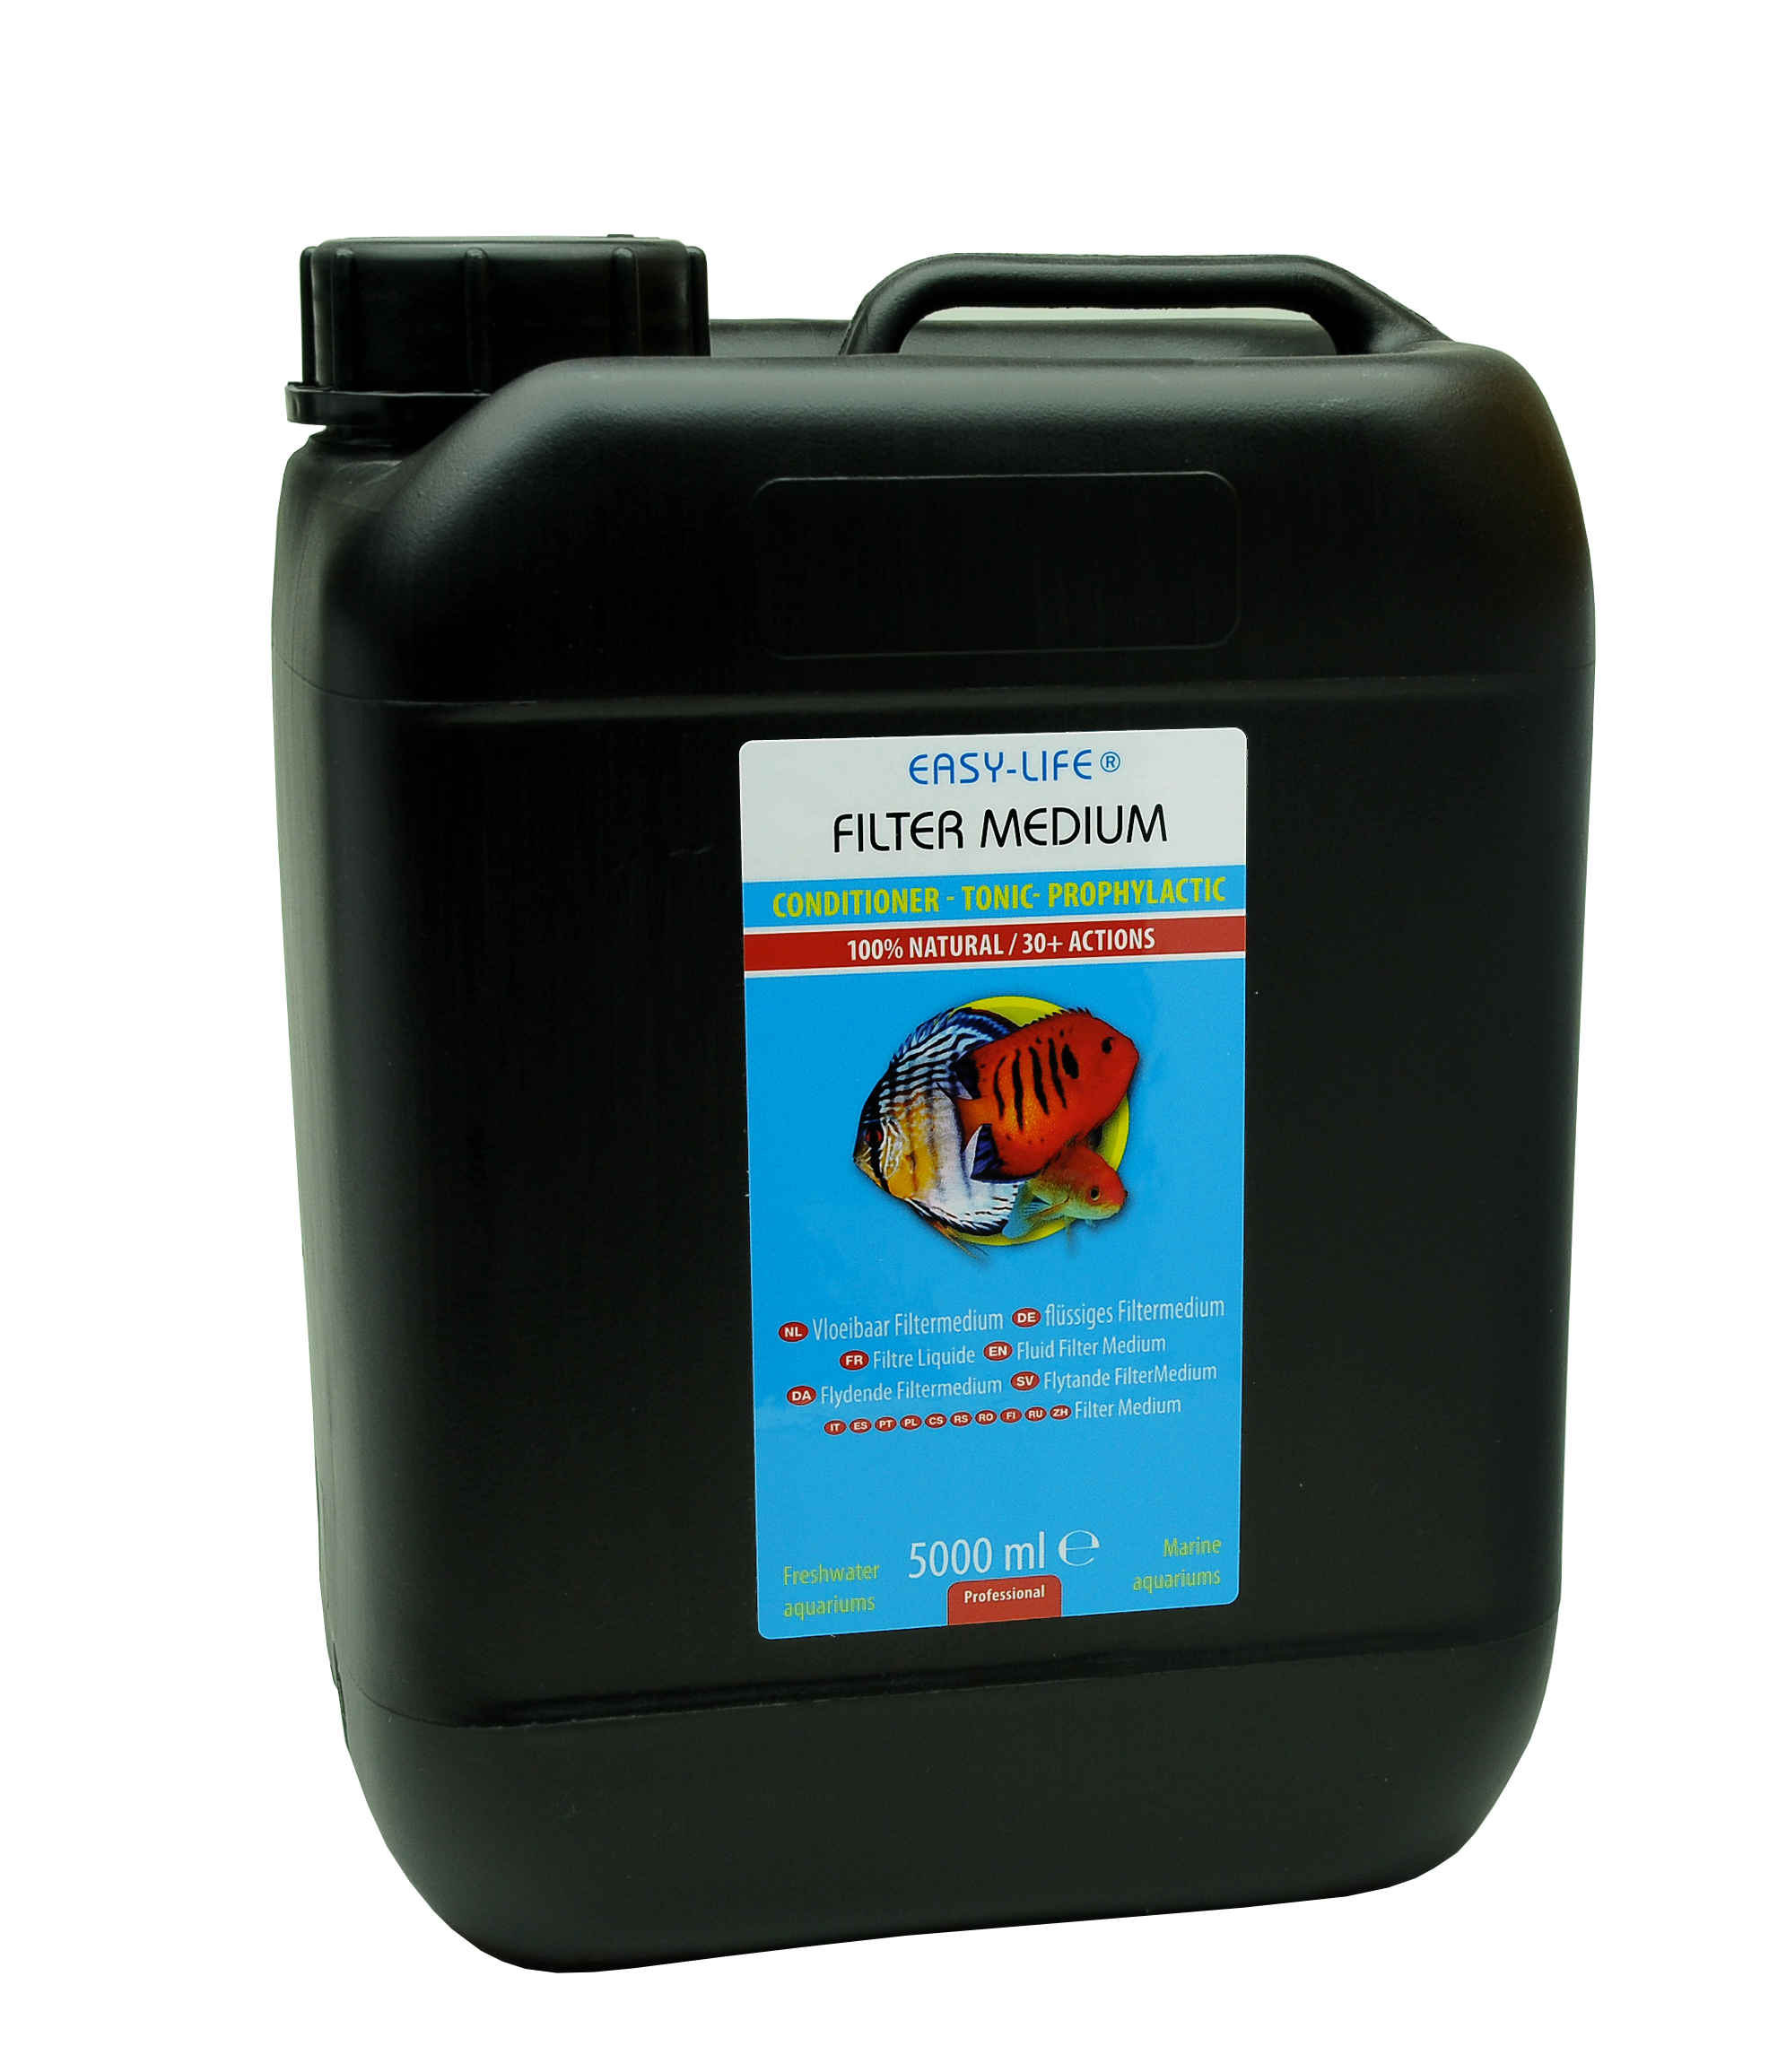 EASY-LIFE Filtre Medium 5L conditionneur naturel multi-application pour aquariums jusqu\'à 15000 litres